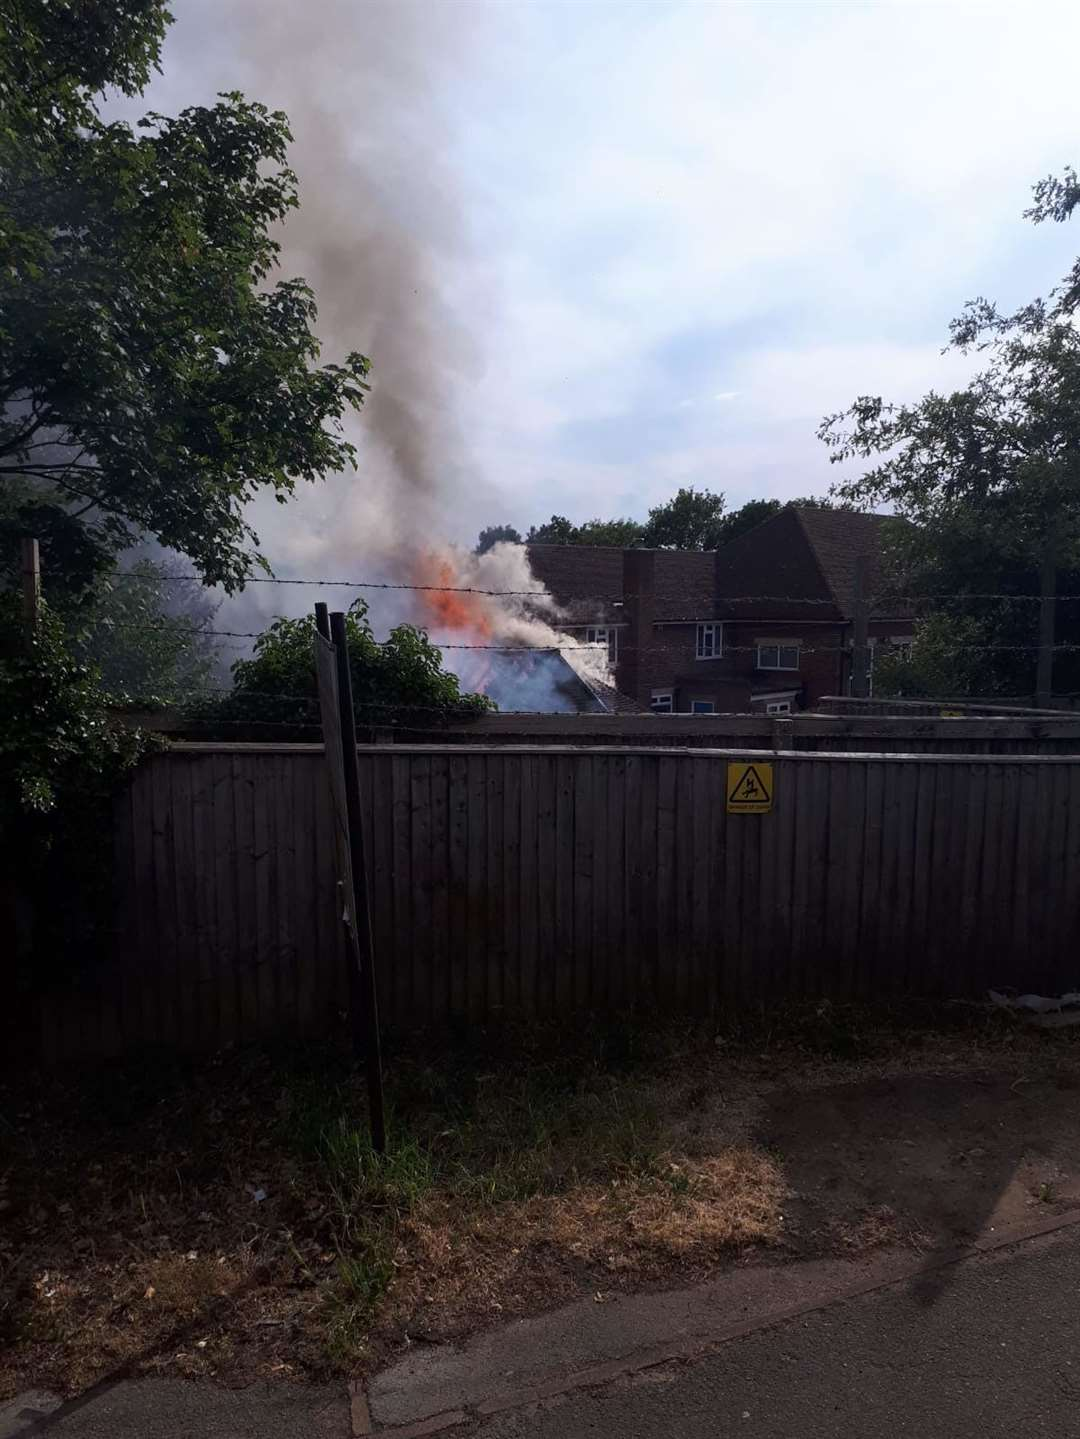 It's thought the fire started in an outhouse behind North Borough Junior School. Picture: Paul McPolin